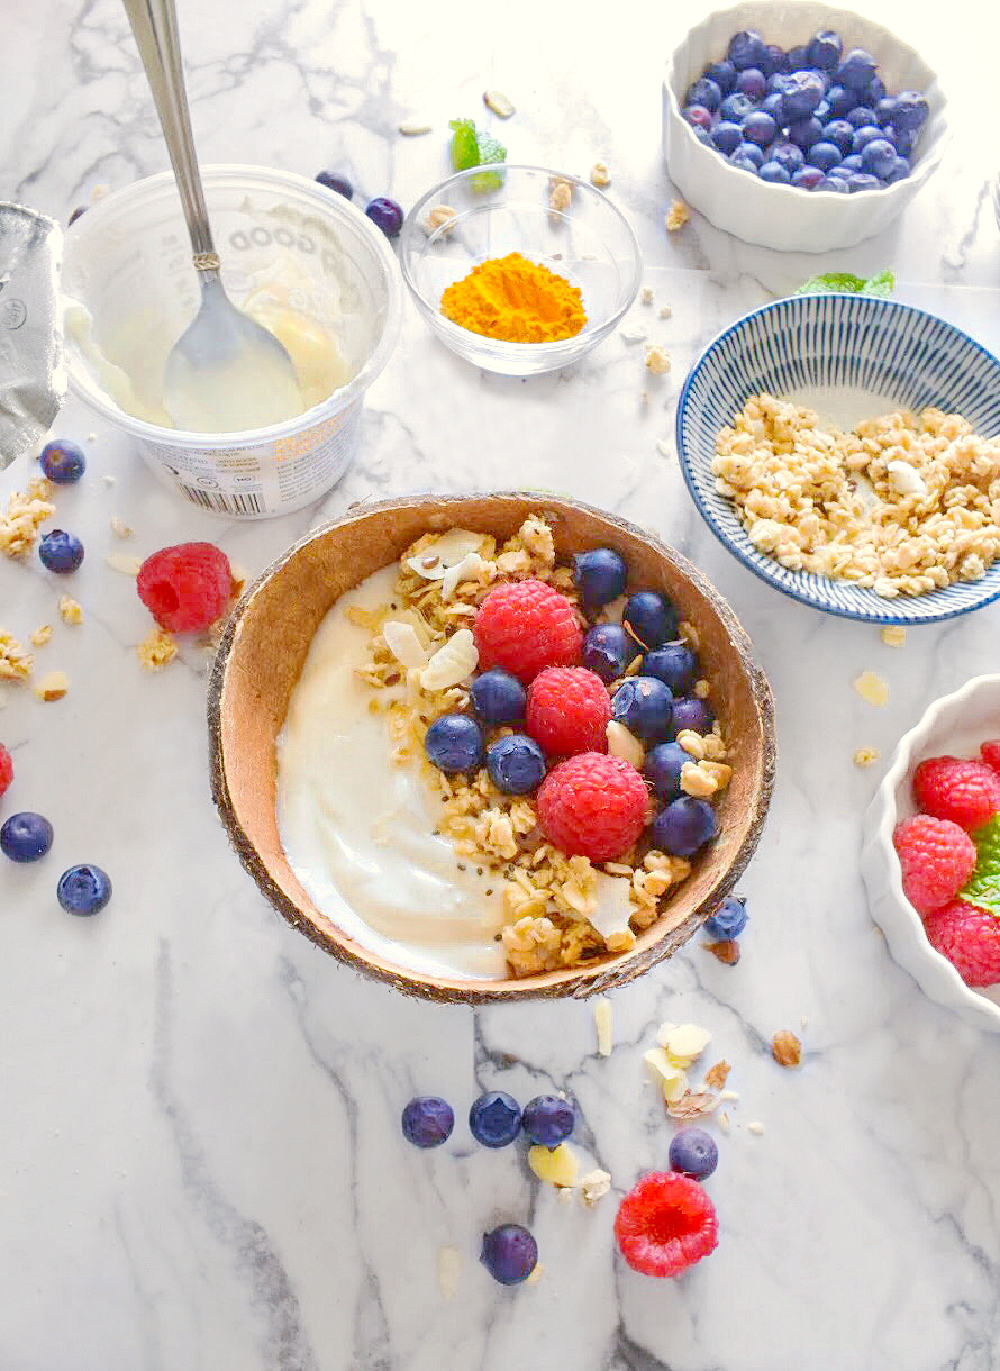 Yogurt bowl with granola and fruits